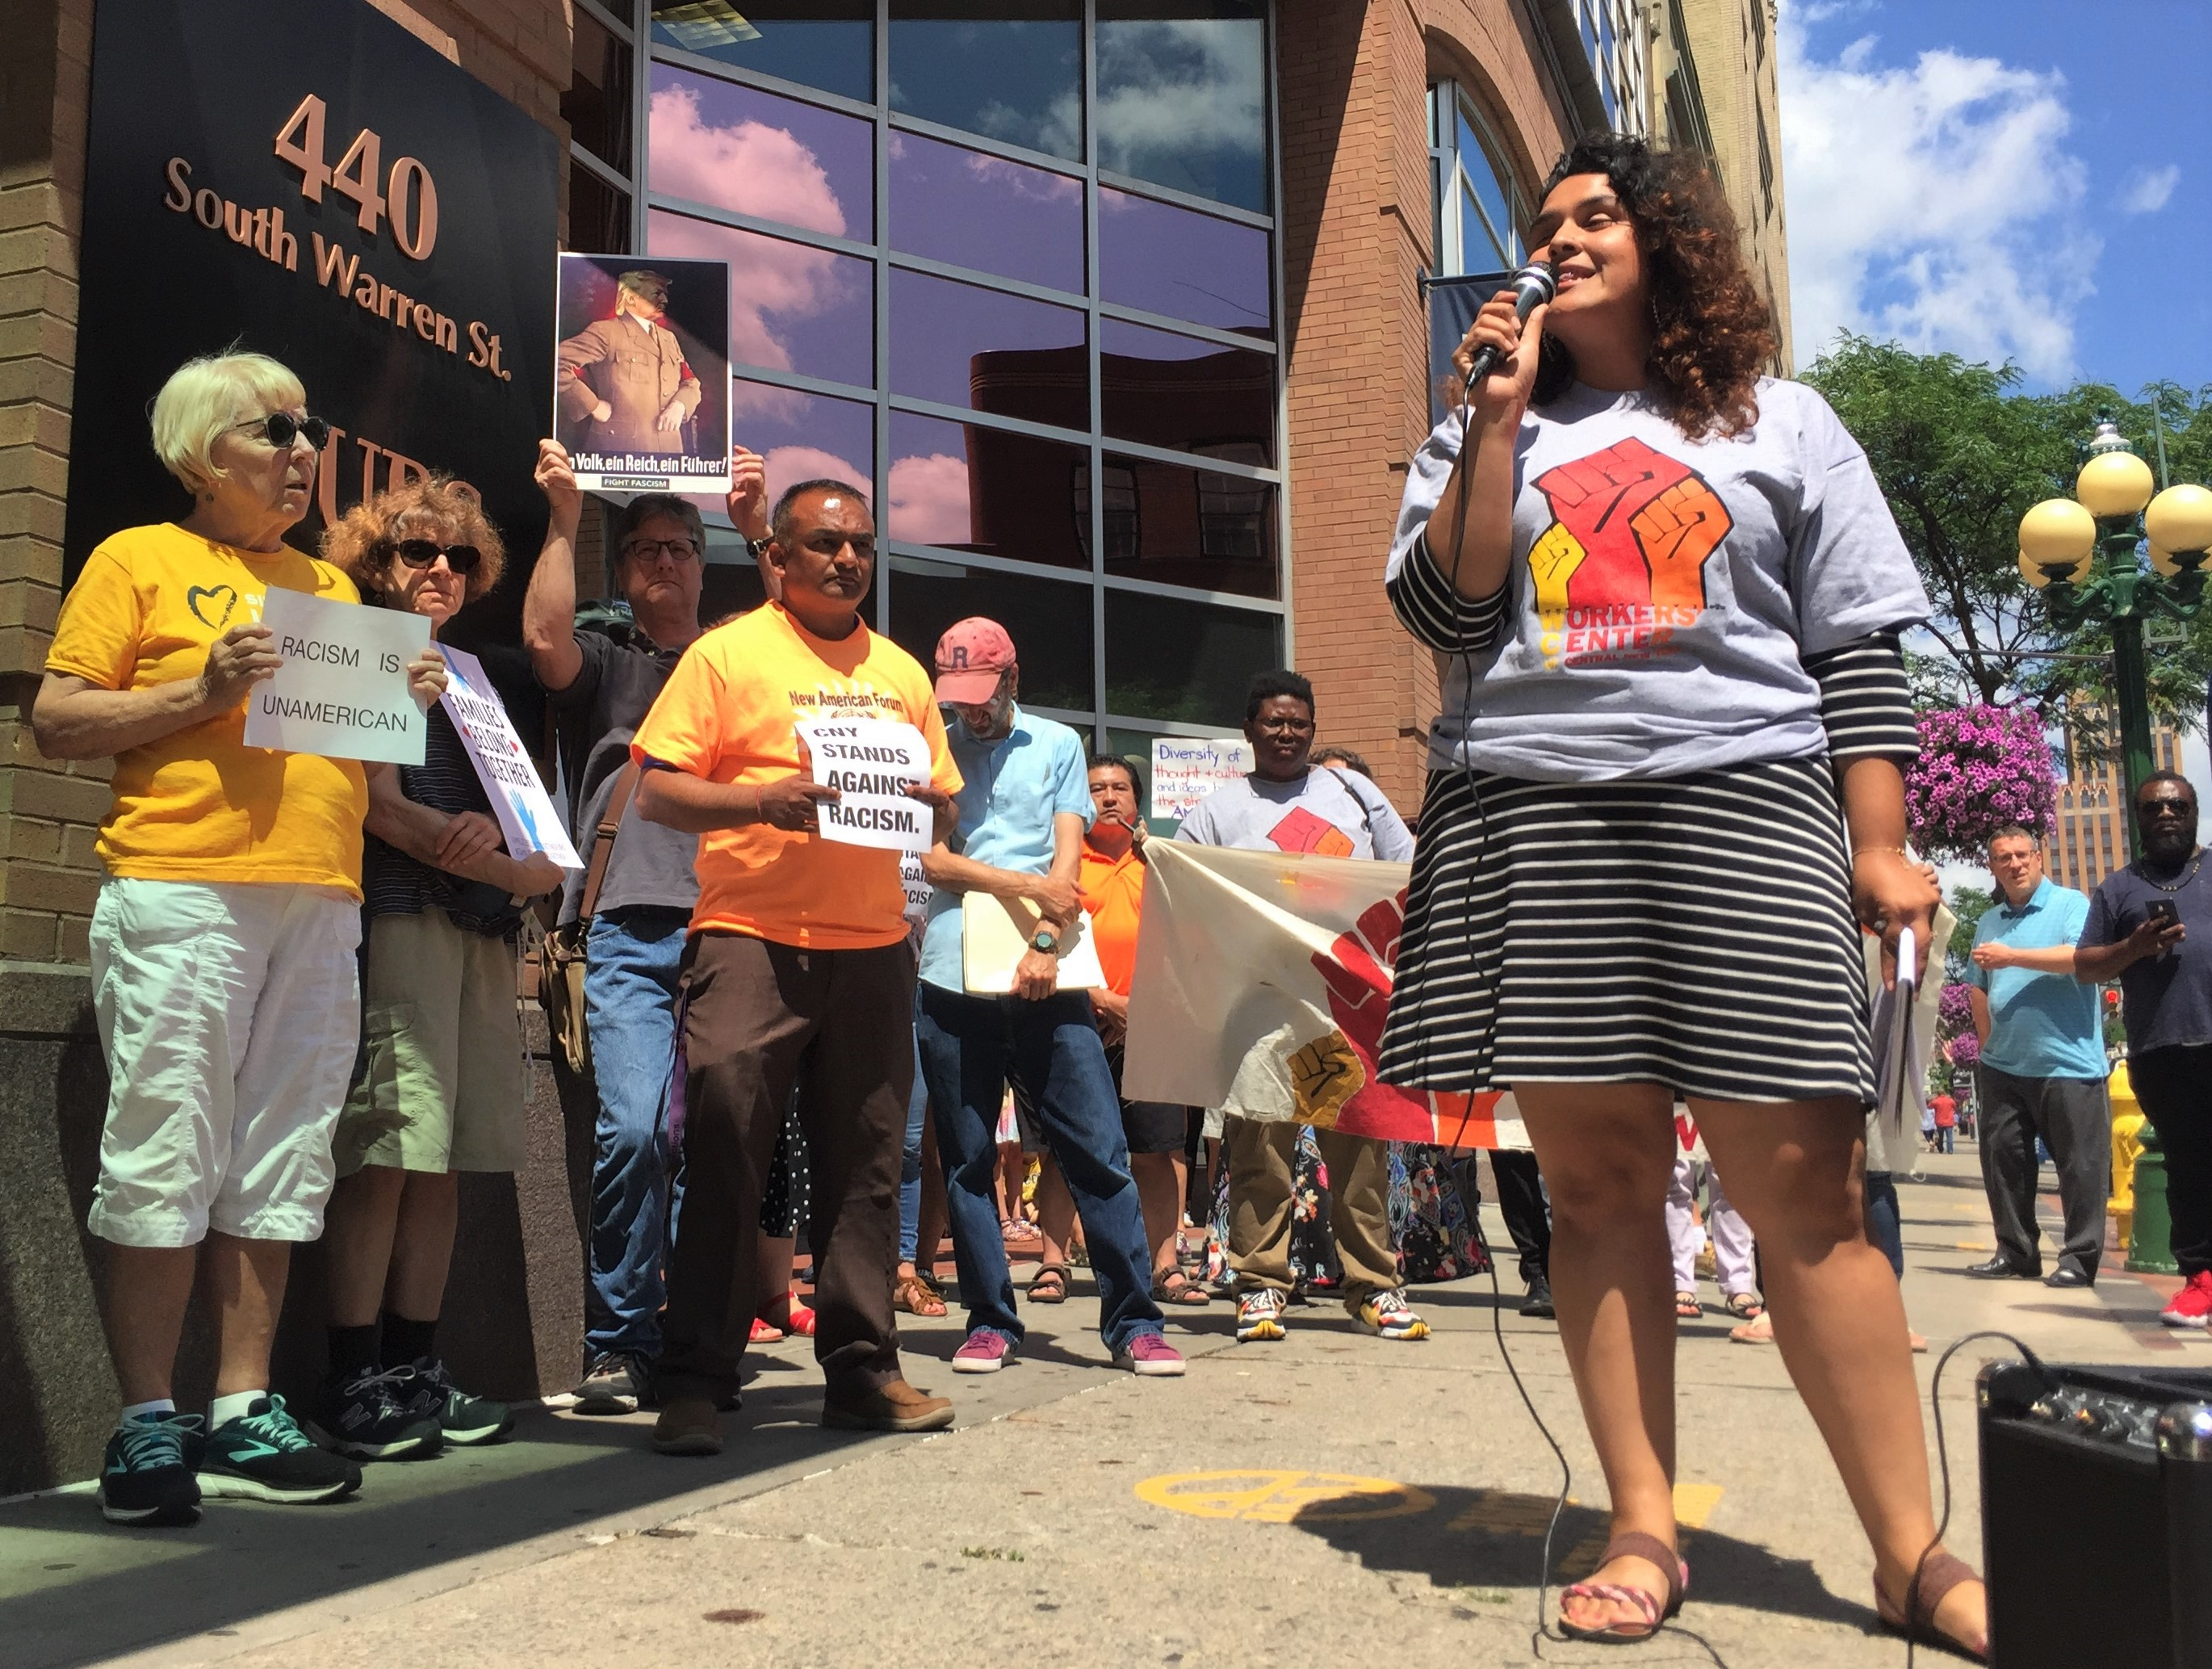 Protesters in Syracuse attack racism, Trump's tweets about Democratic congresswomen